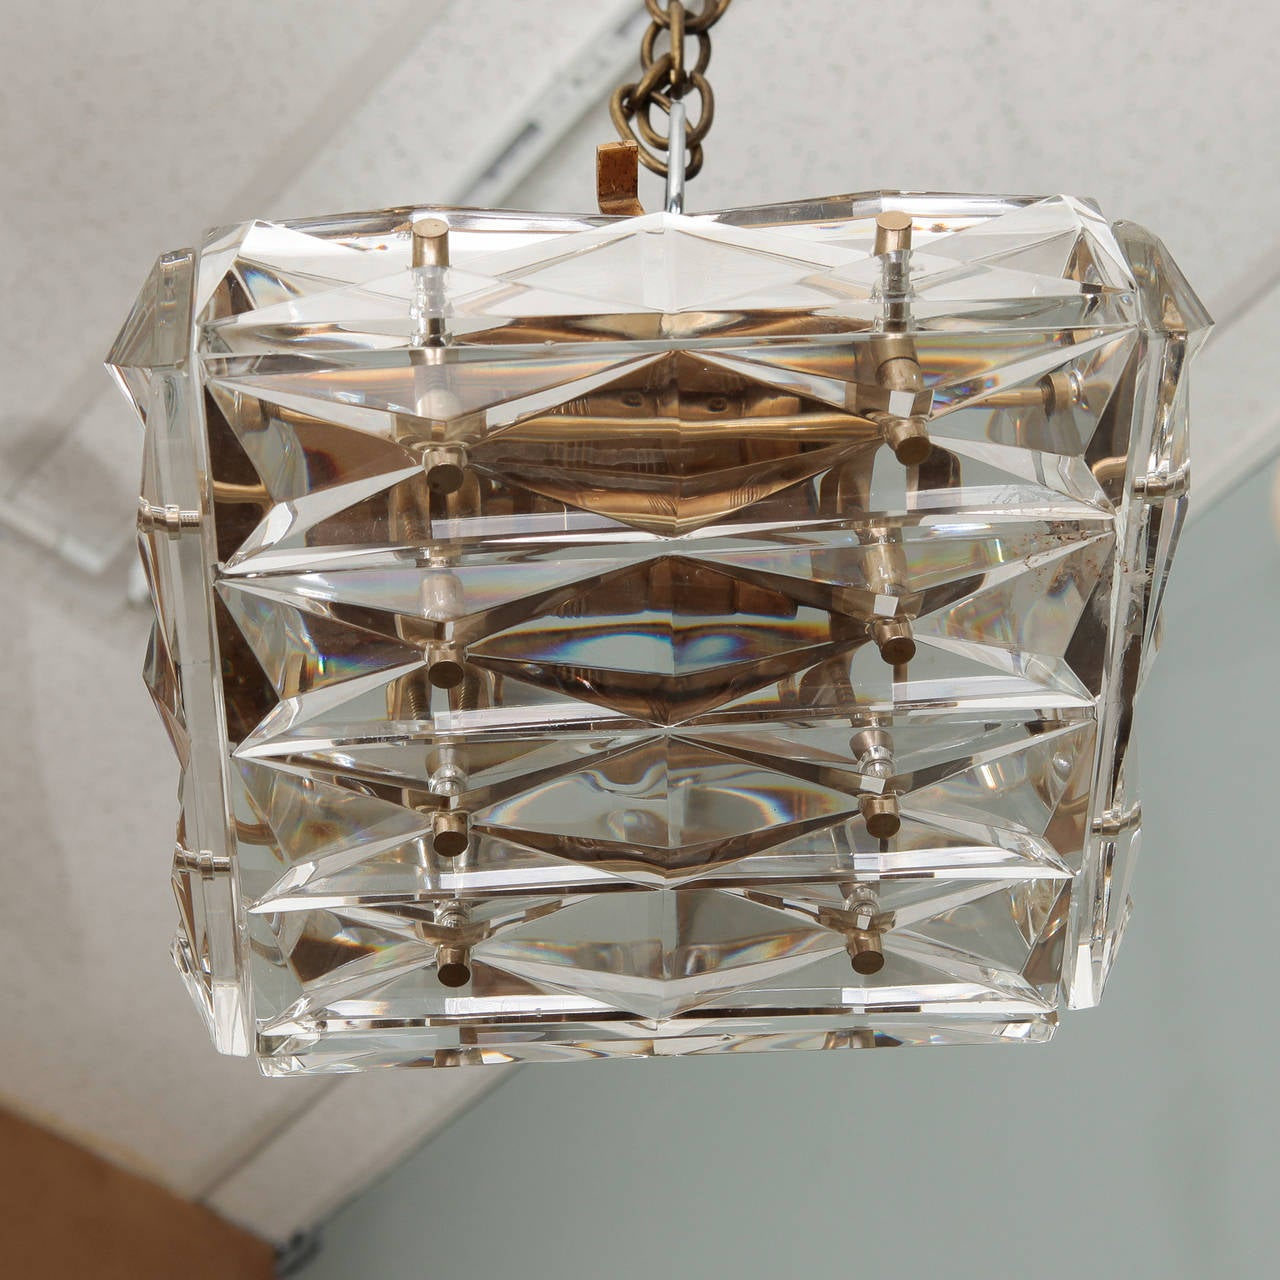 Kindeldey Square Shape Flush Mount or Wall Sconce at 1stdibs